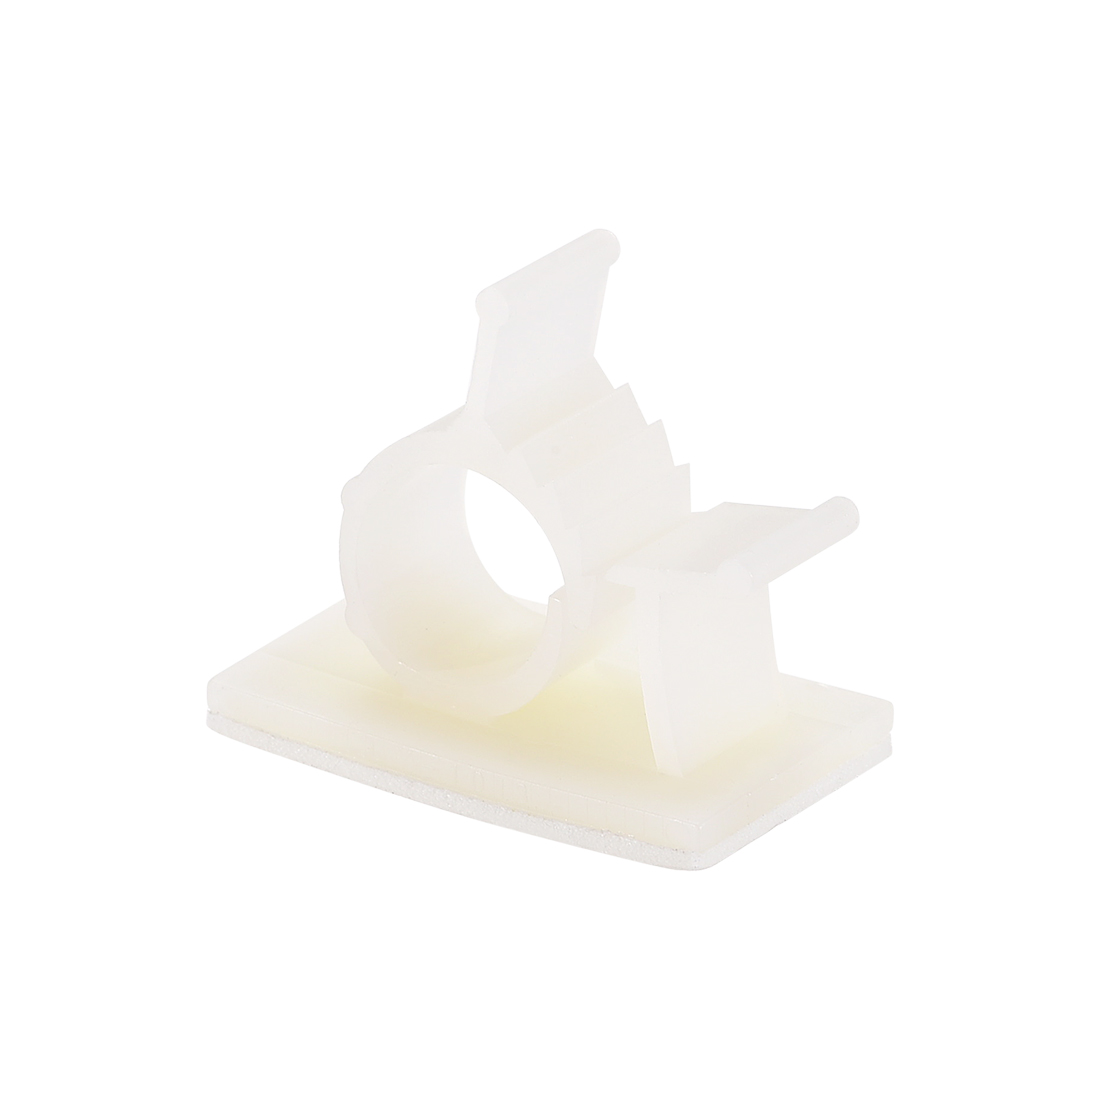 Adjustable White Cable Clips Buckle Adhesive Base for 10-12.5mm Cords 20Pcs